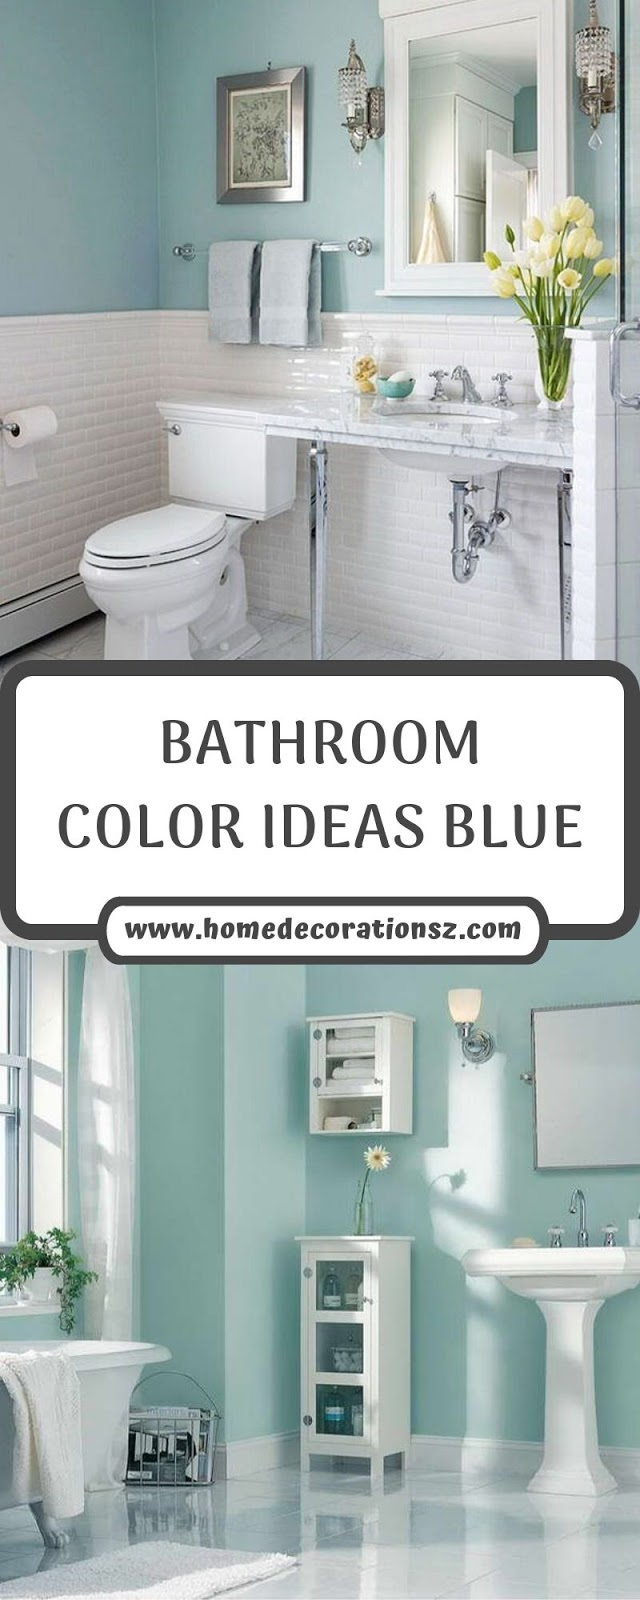 BATHROOM COLOR IDEAS BLUE